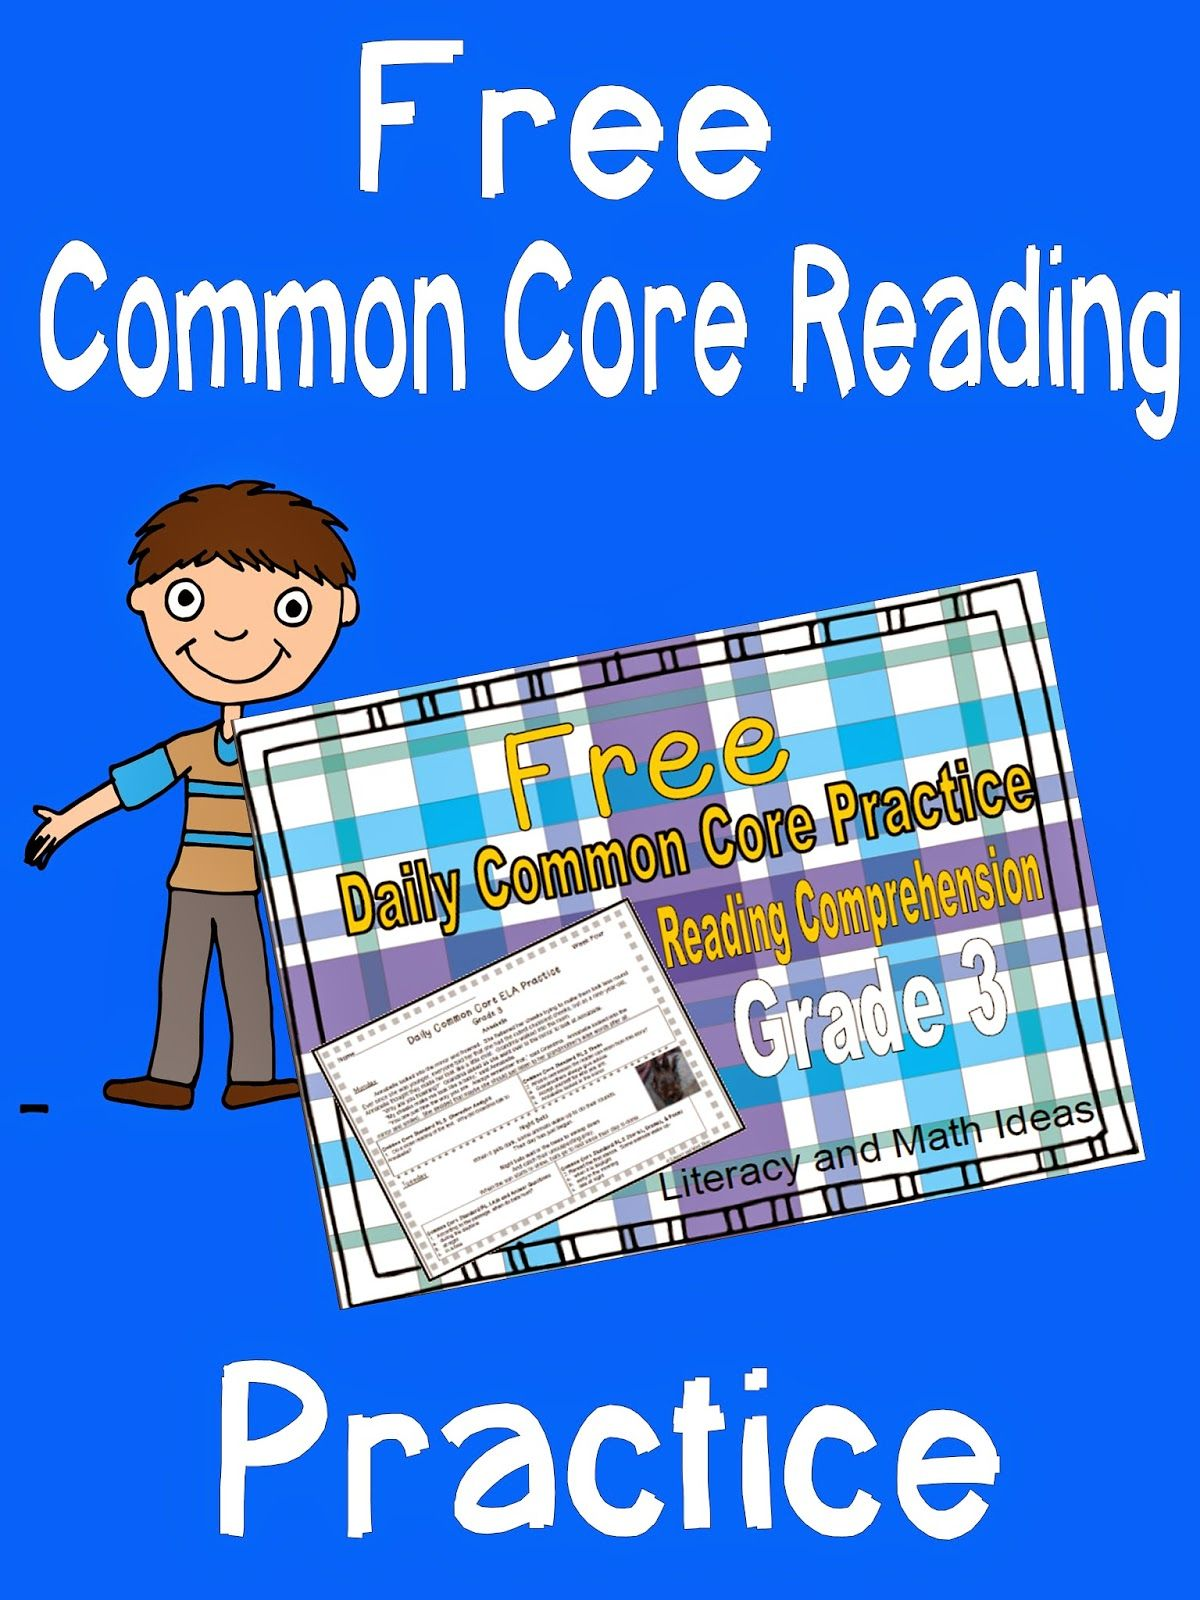 Worksheet Reading Comprehension Practice 3rd Grade free grade 3 daily common core reading comprehension practice practice